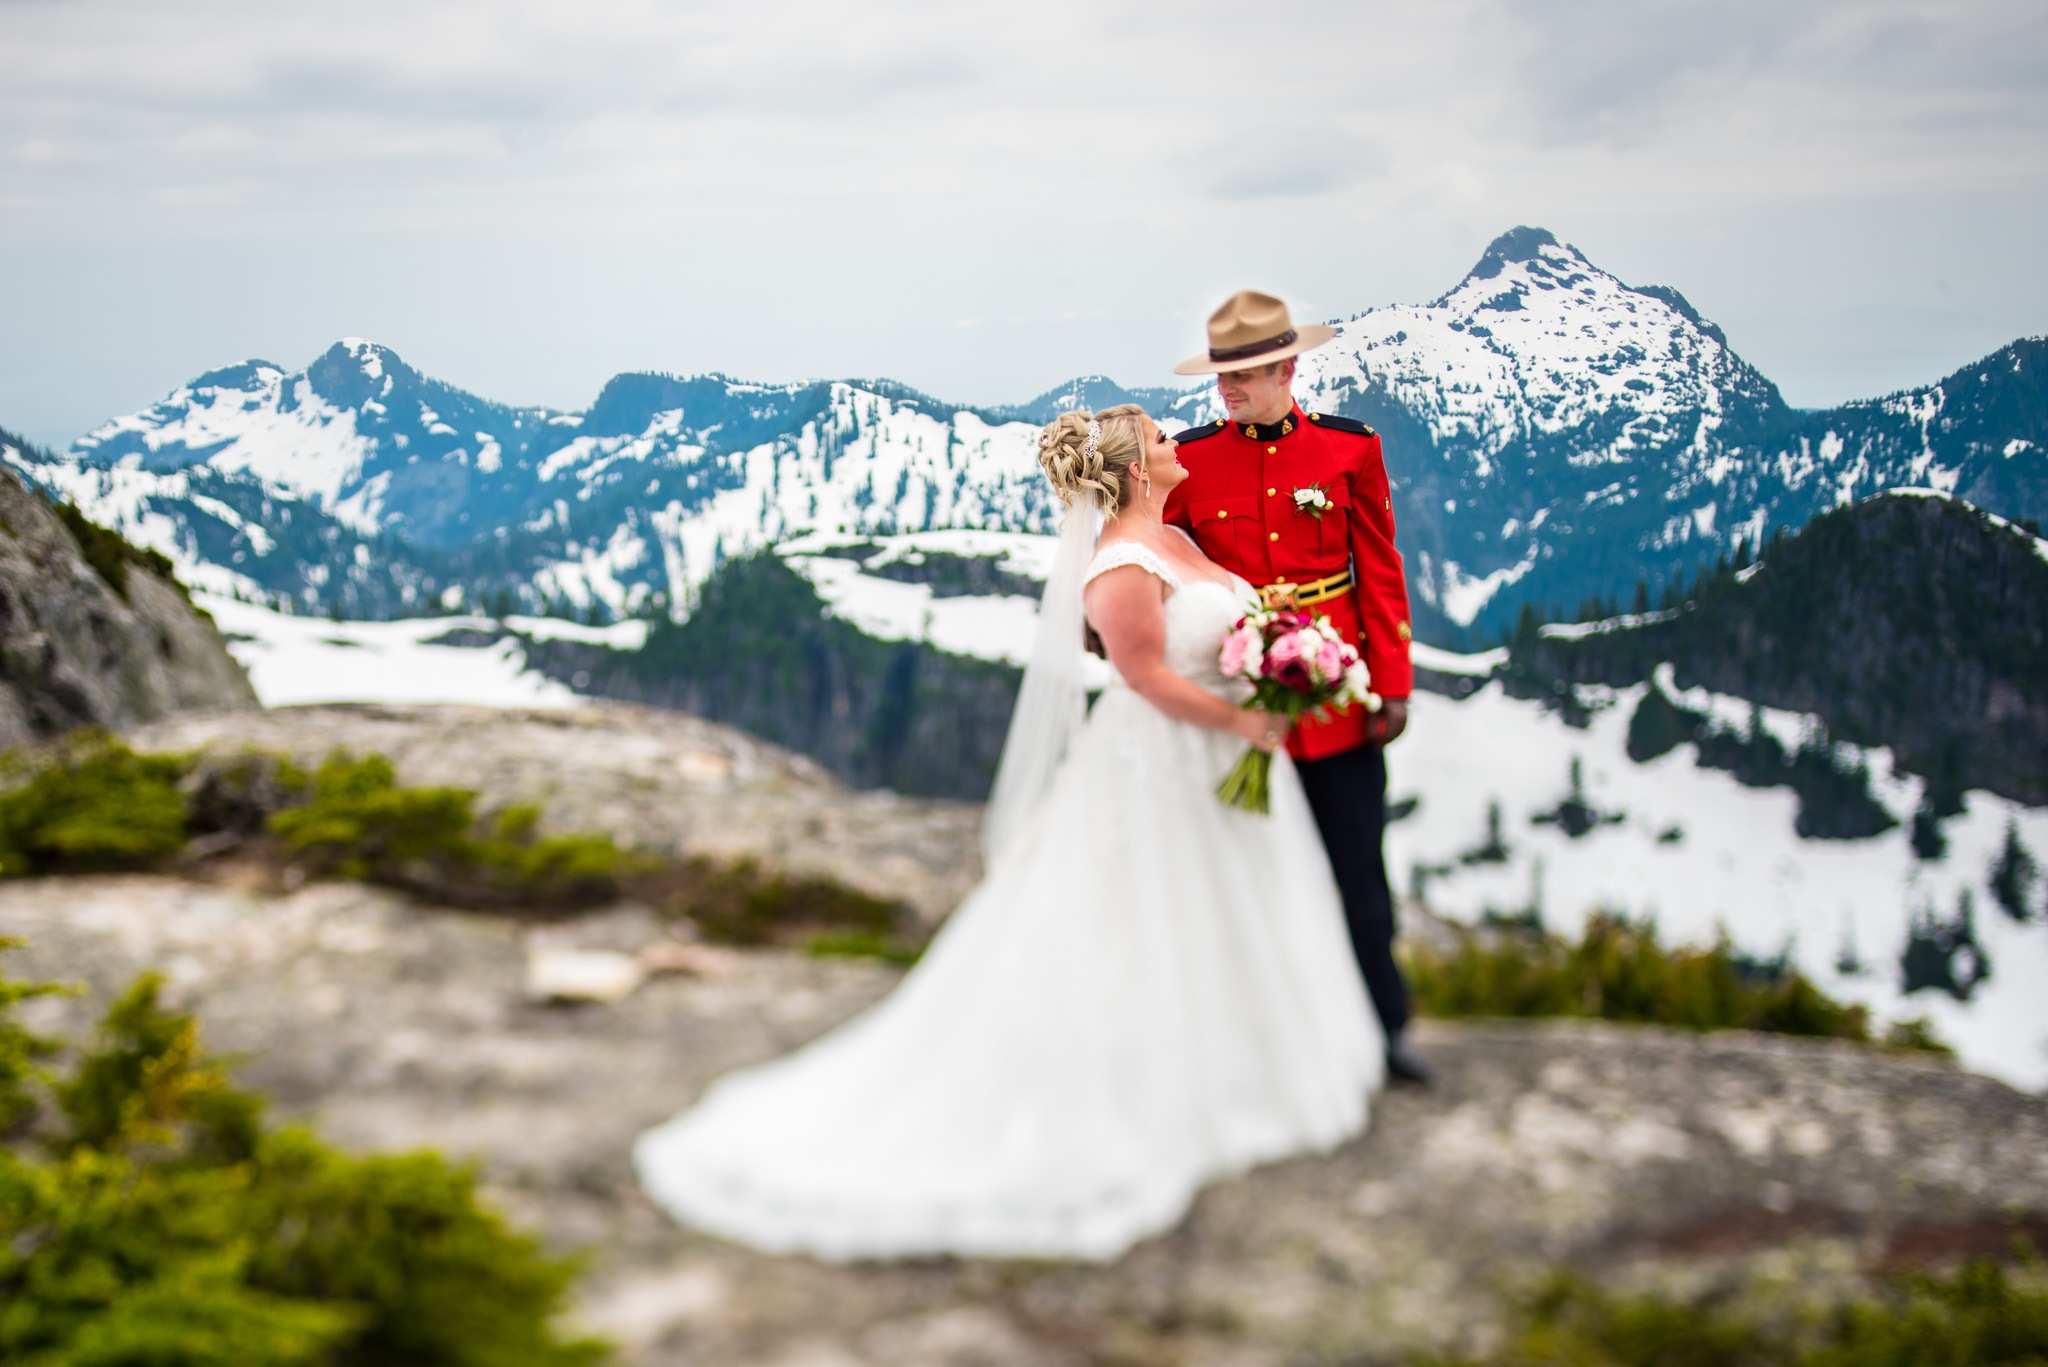 victoria-wedding-photographers-mountaintop-wedding-in-bc-14.jpg